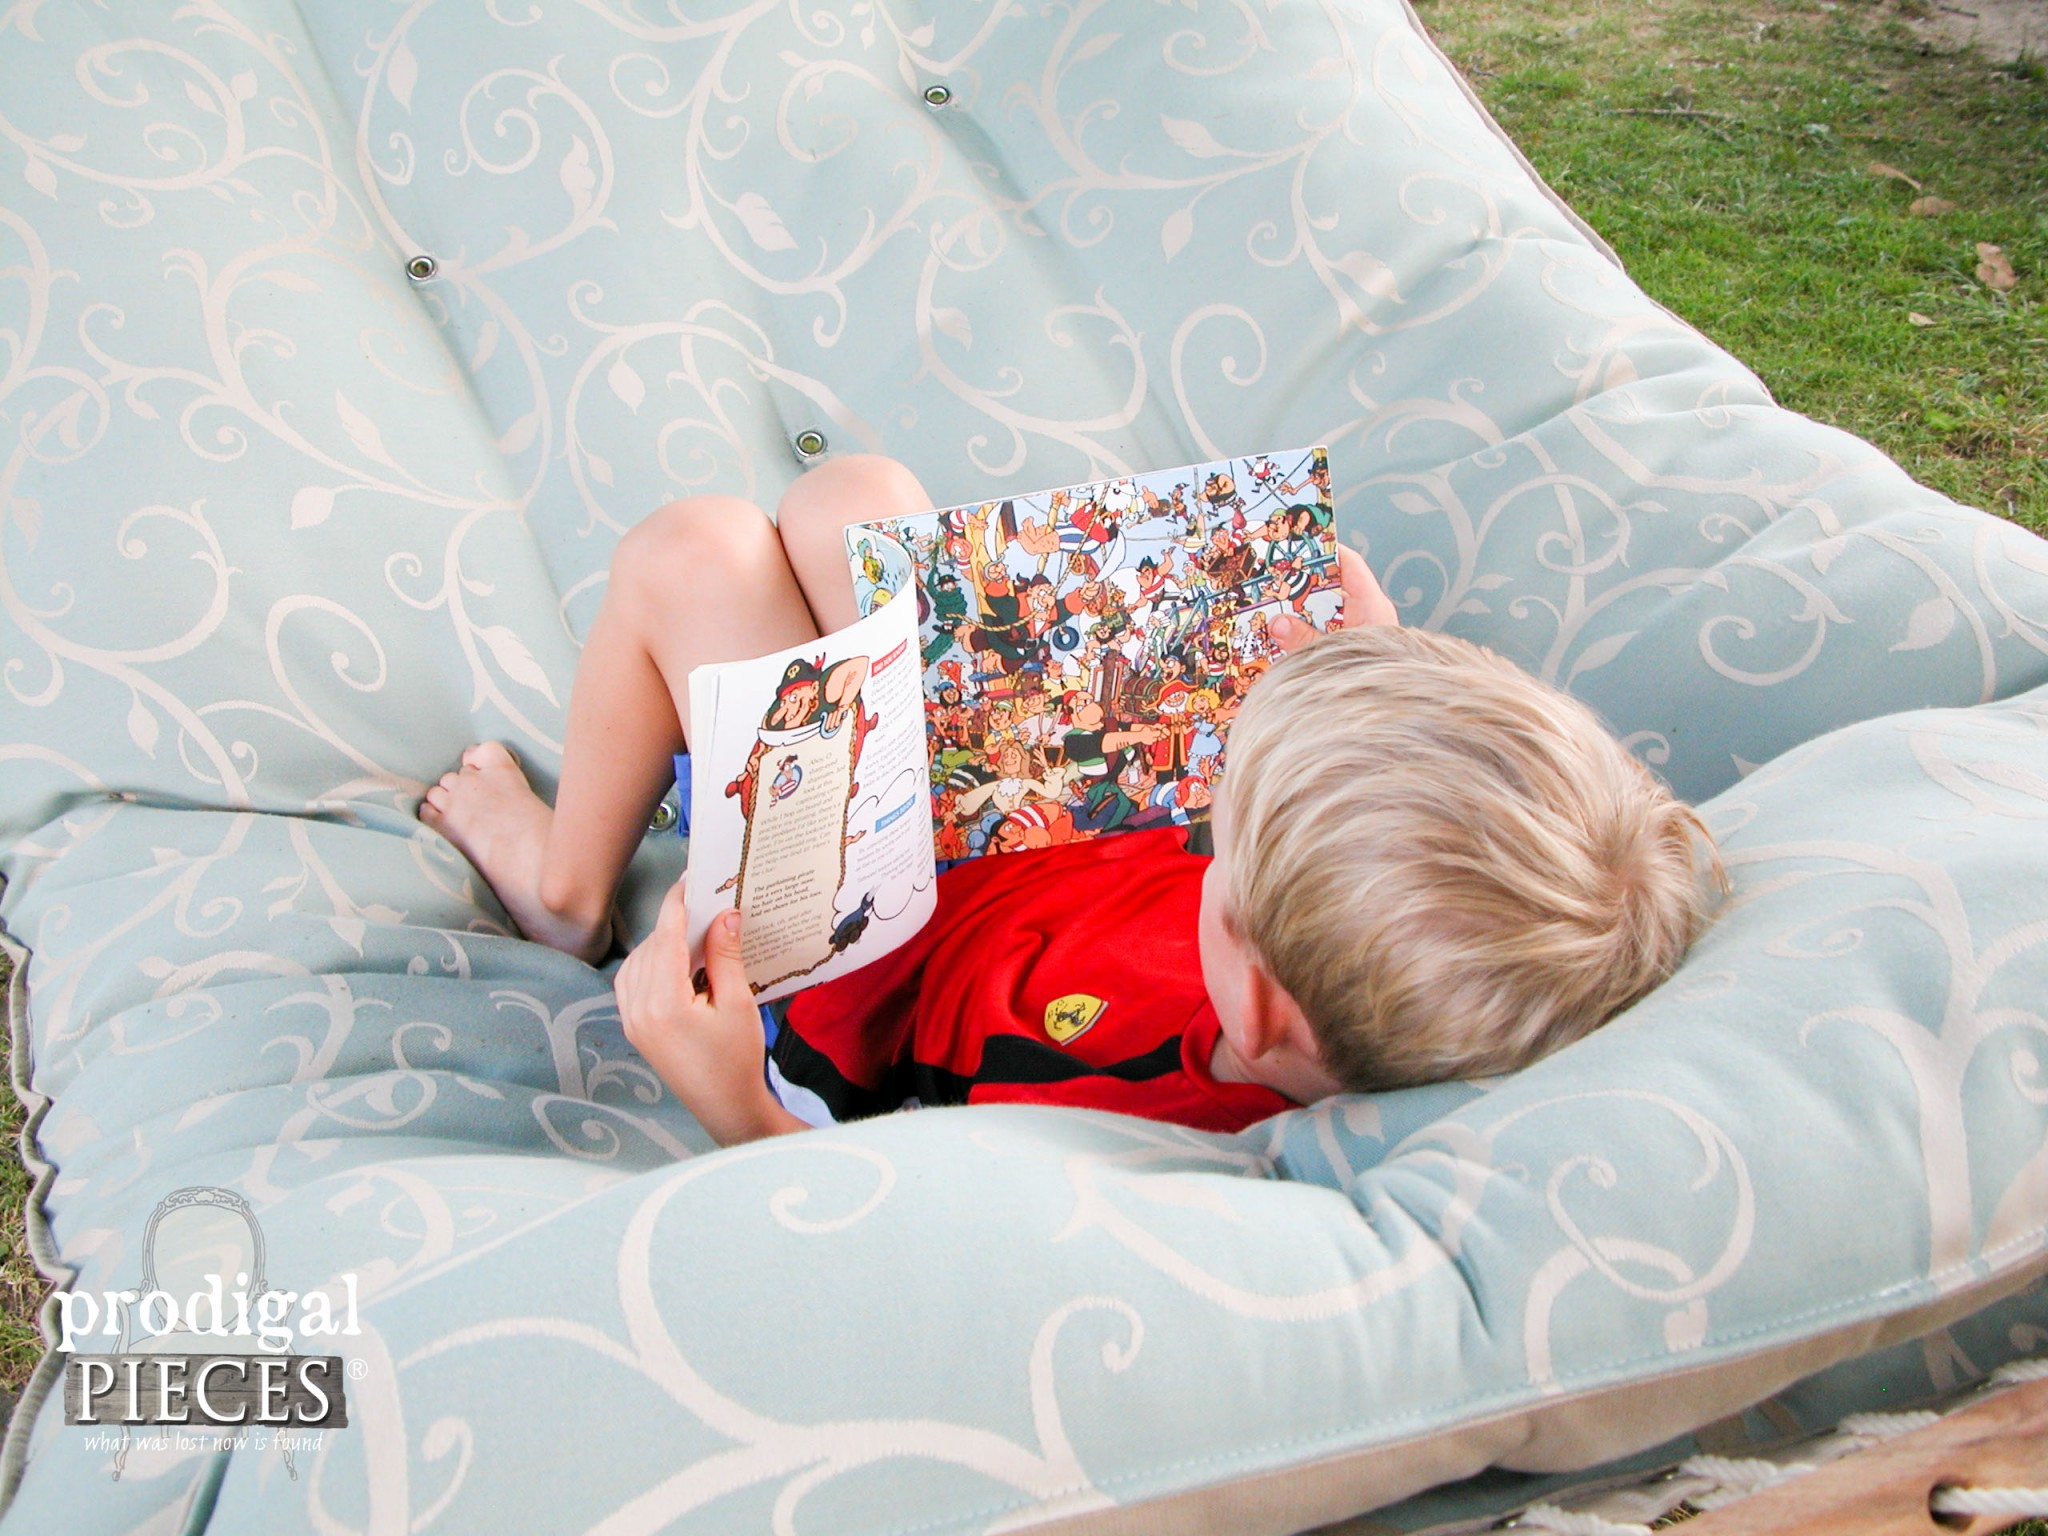 Boy Reading Book in Tufted Hammock | Prodigal Pieces | www.prodigalpieces.com